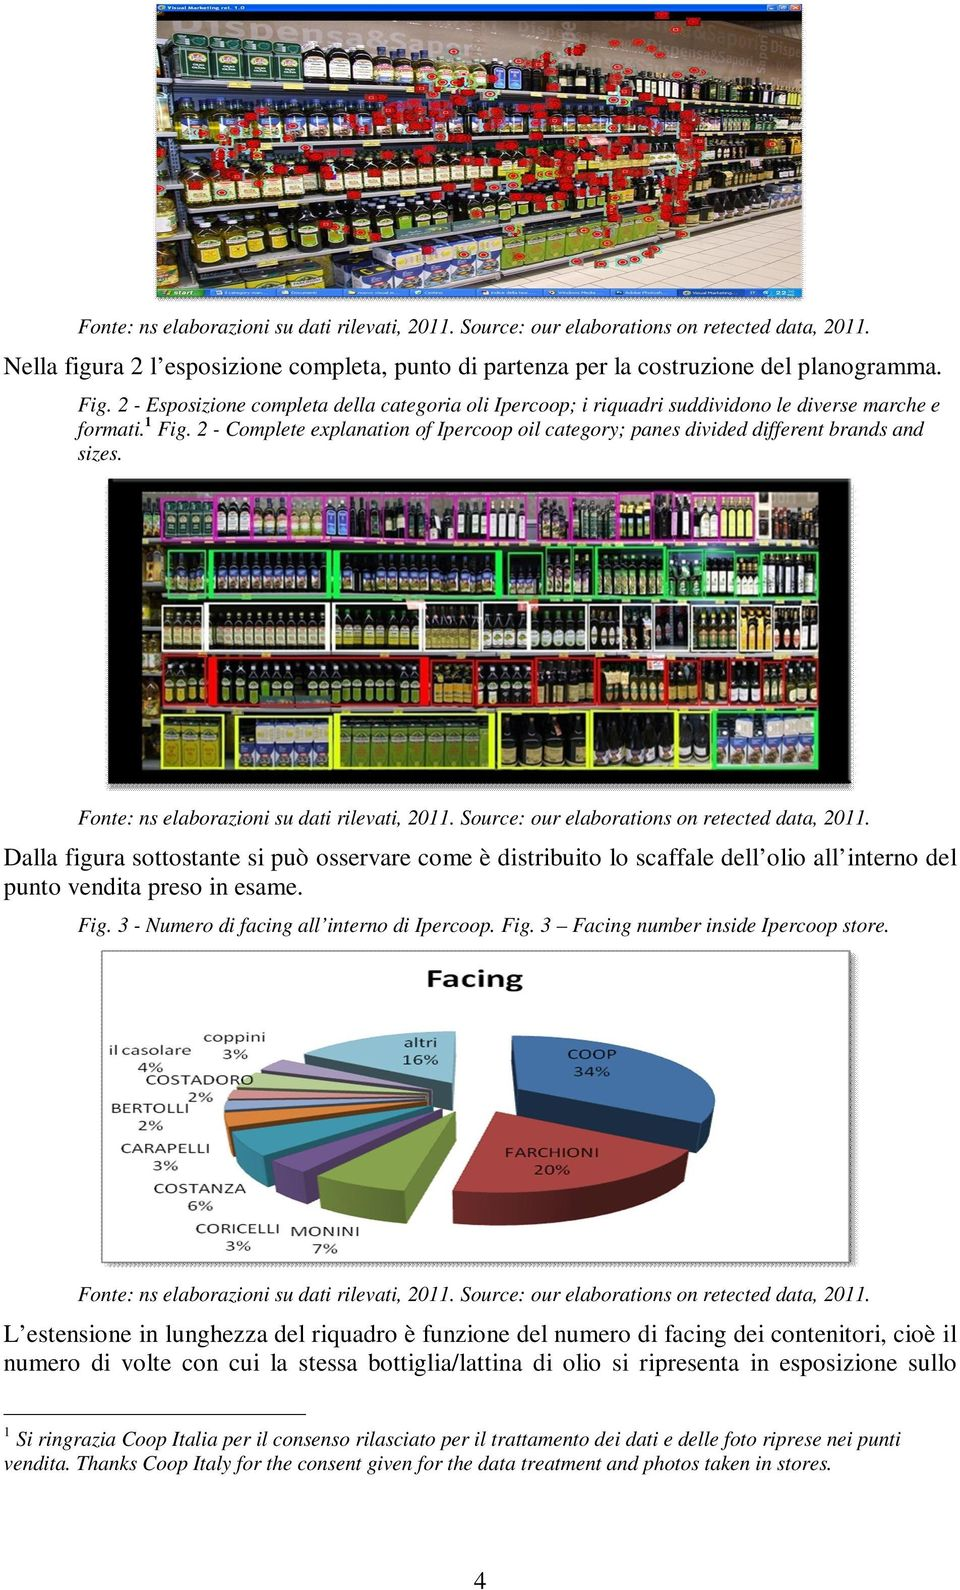 2 - Complete explanation of Ipercoop oil category; panes divided different brands and sizes. Fonte: ns elaborazioni su dati rilevati, 2011. Source: our elaborations on retected data, 2011.